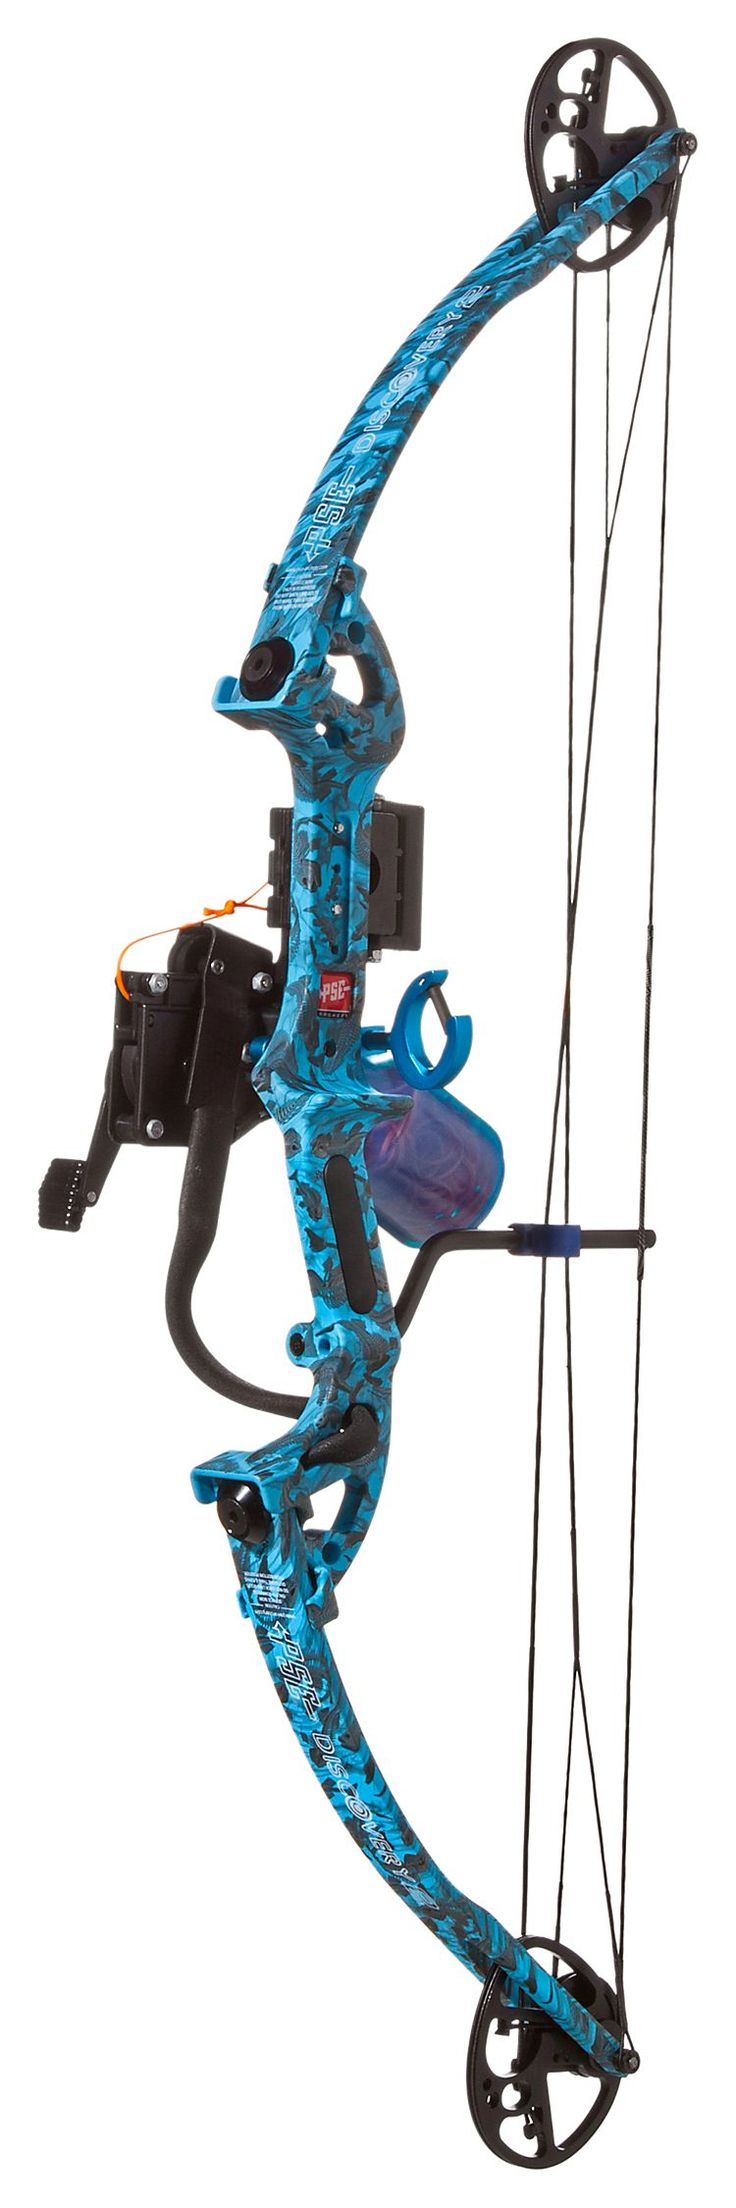 PSE Archery Discovery Bowfishing Package | Bass Pro Shops